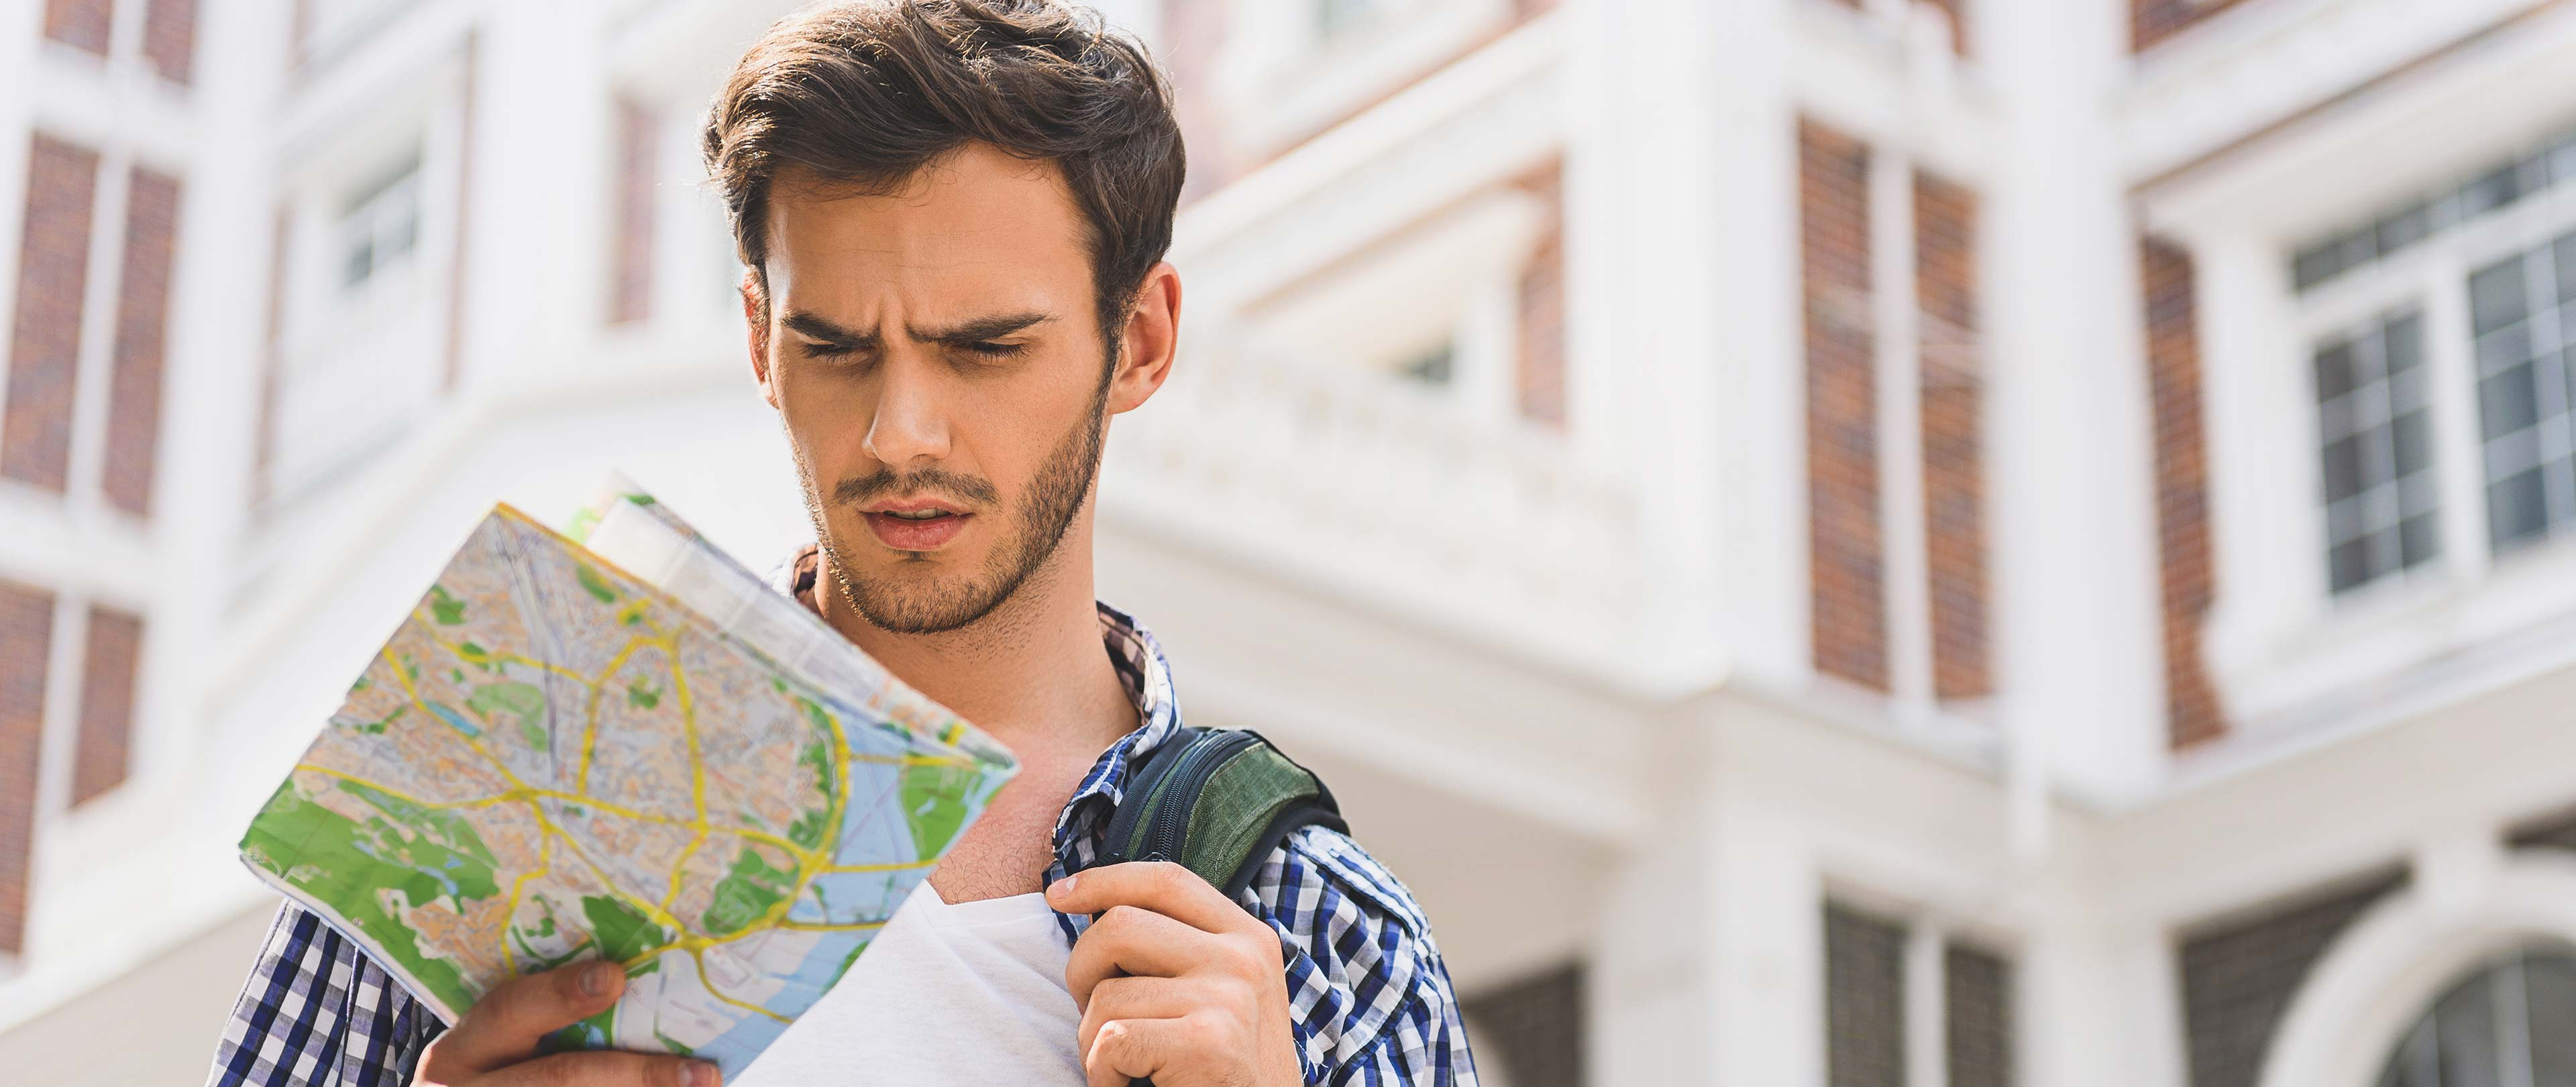 Becoming a Travel Genius: The Ins and Outs of Smarter Travel